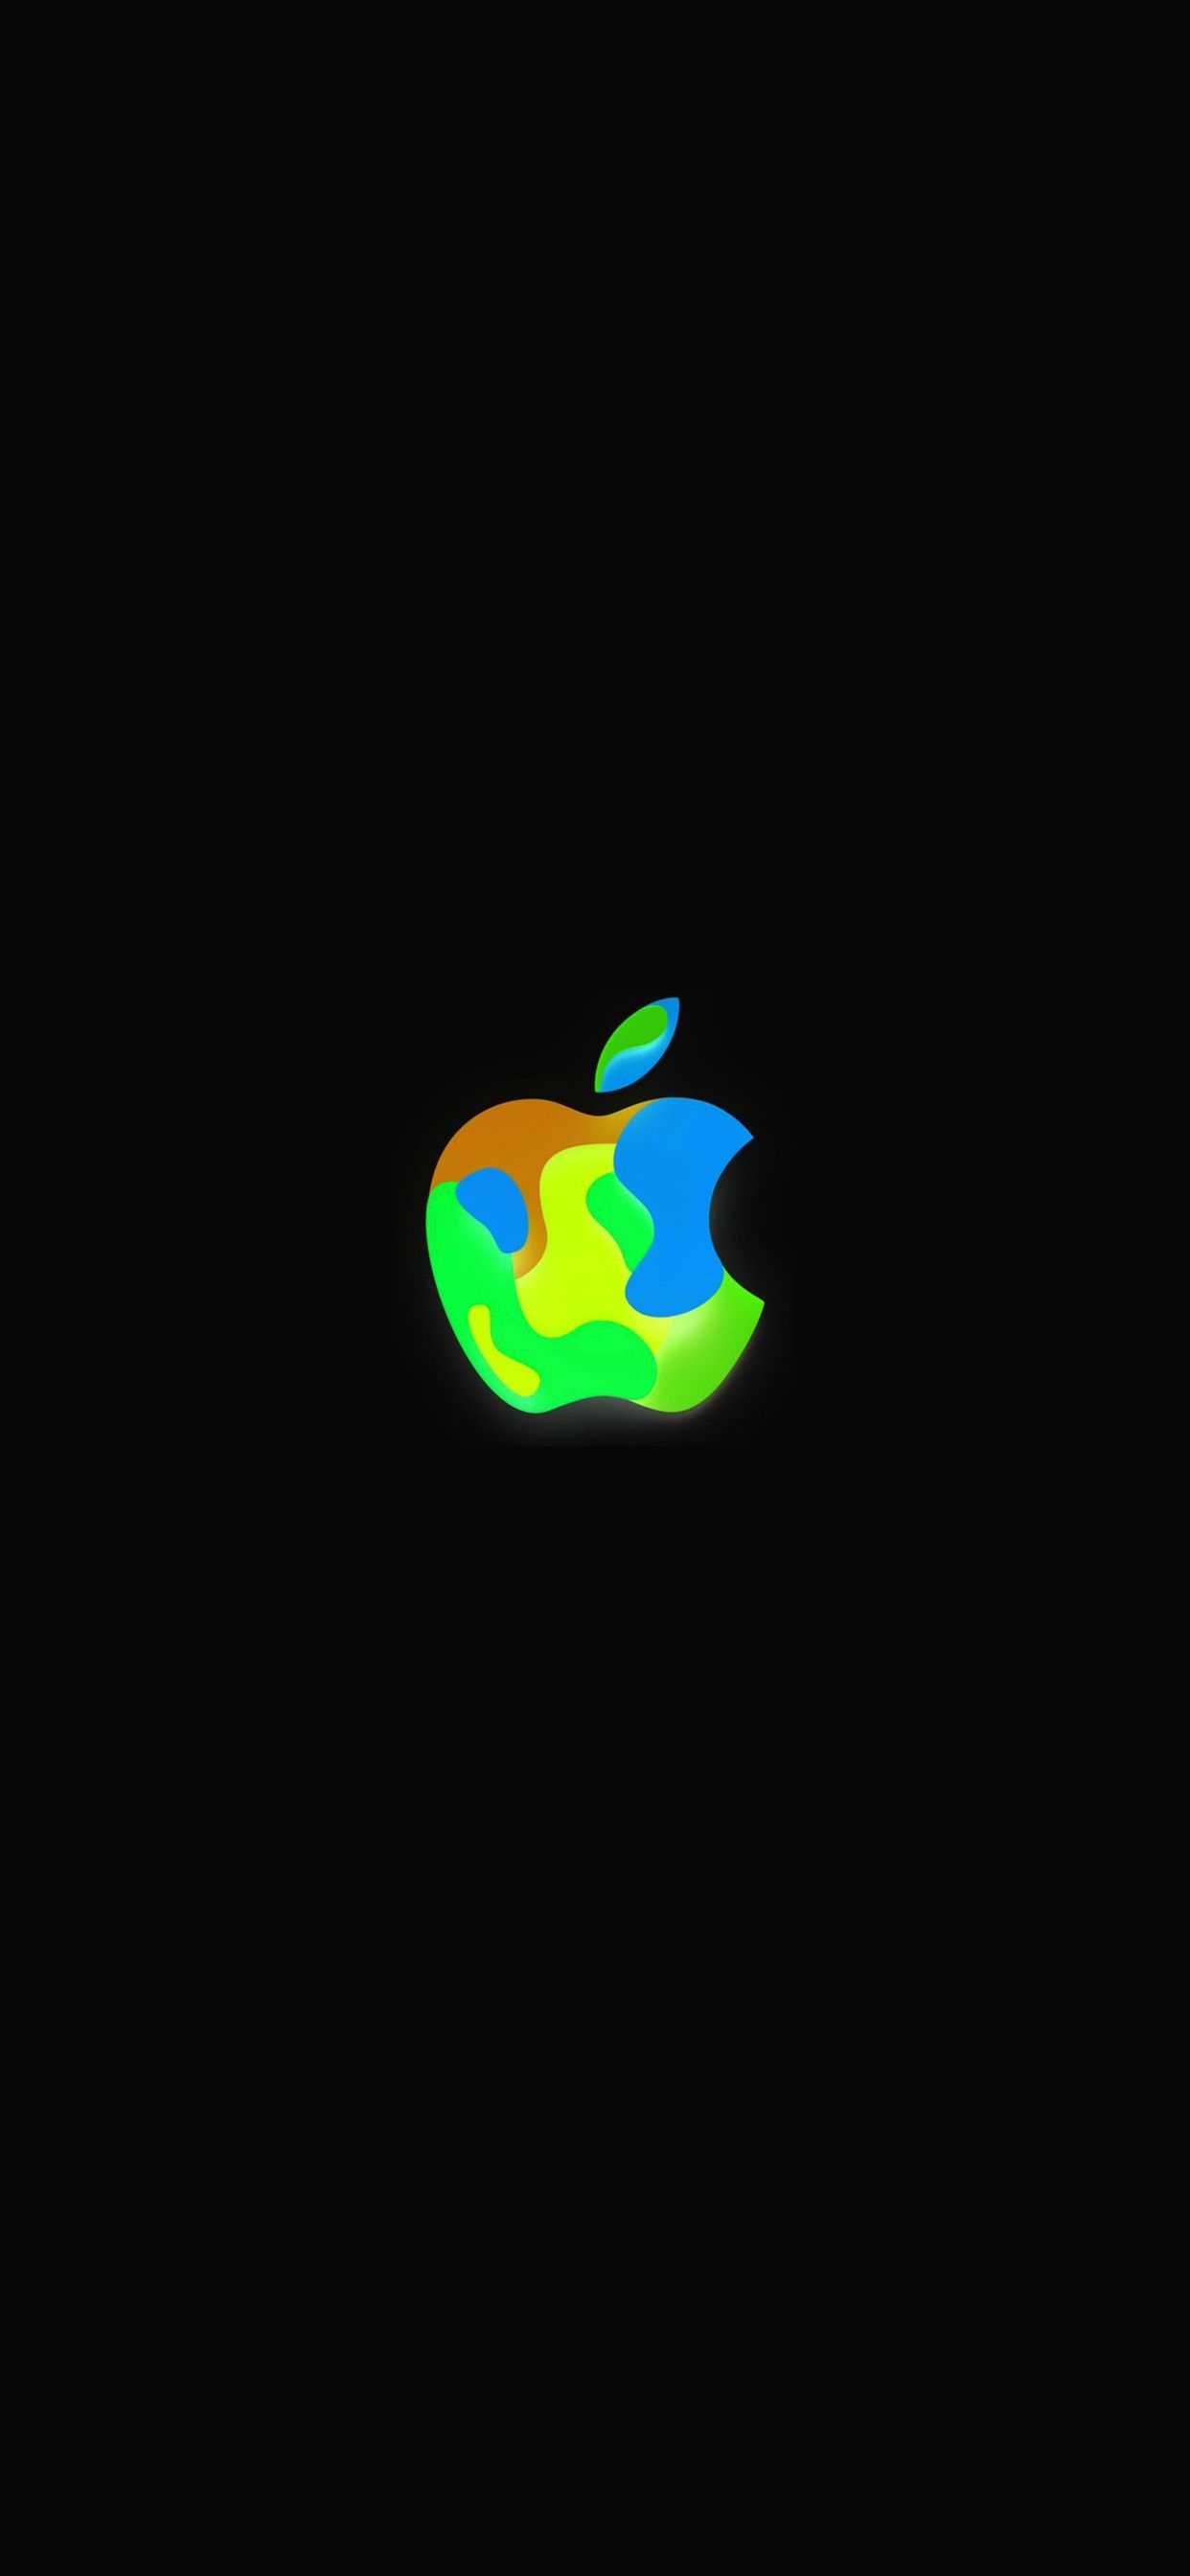 Apple Event 30 Oct Wallpapers Black Reverse By Ar7 Google Drive Apple Logo Wallpaper Iphone Apple Wallpaper Wallpaper